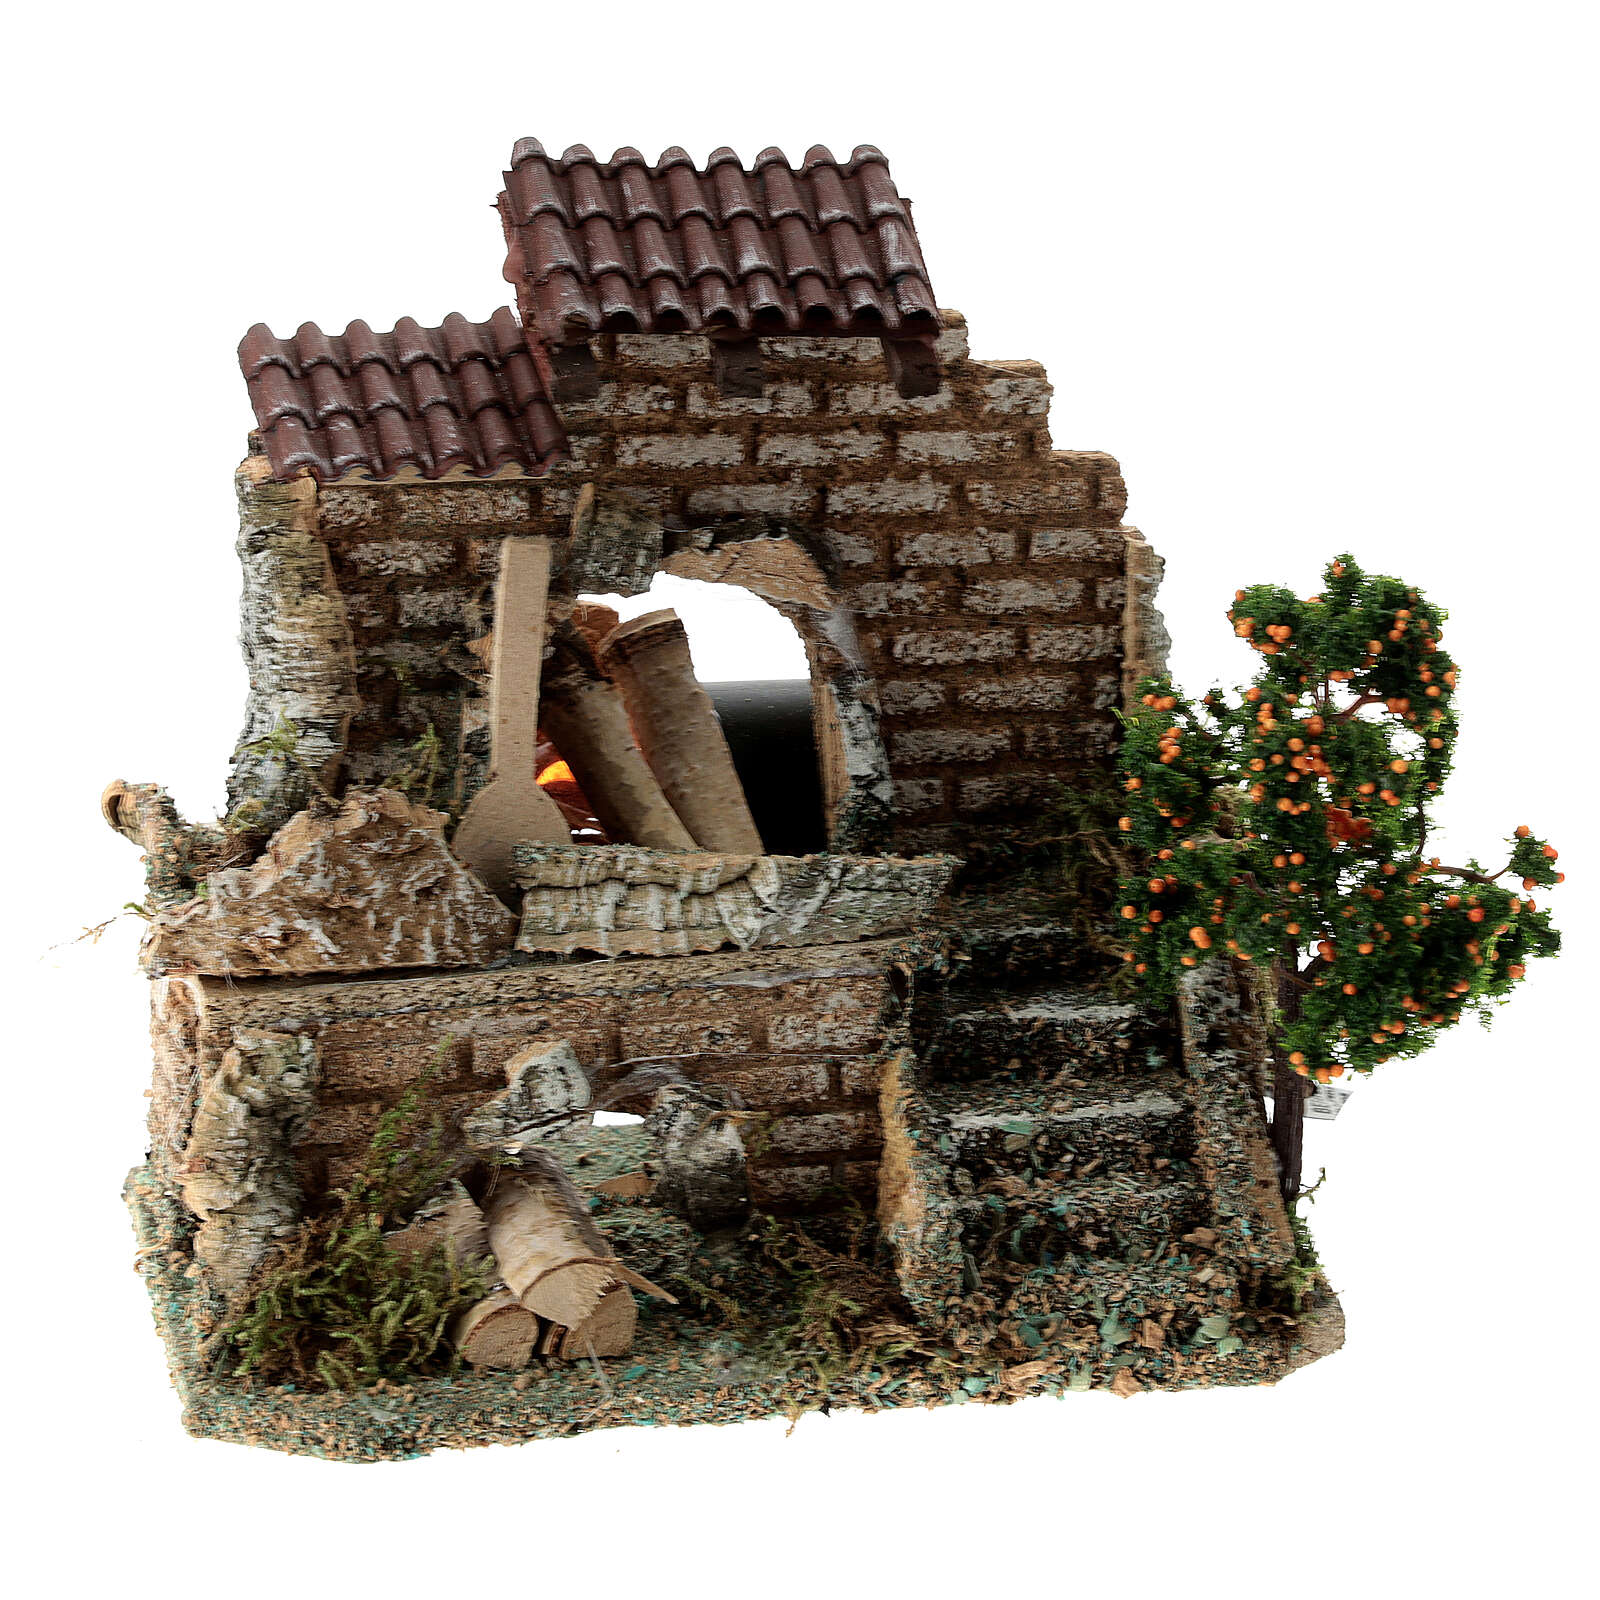 Working fire oven figurine, 20x15x10 cm 6-8 cm nativity 4